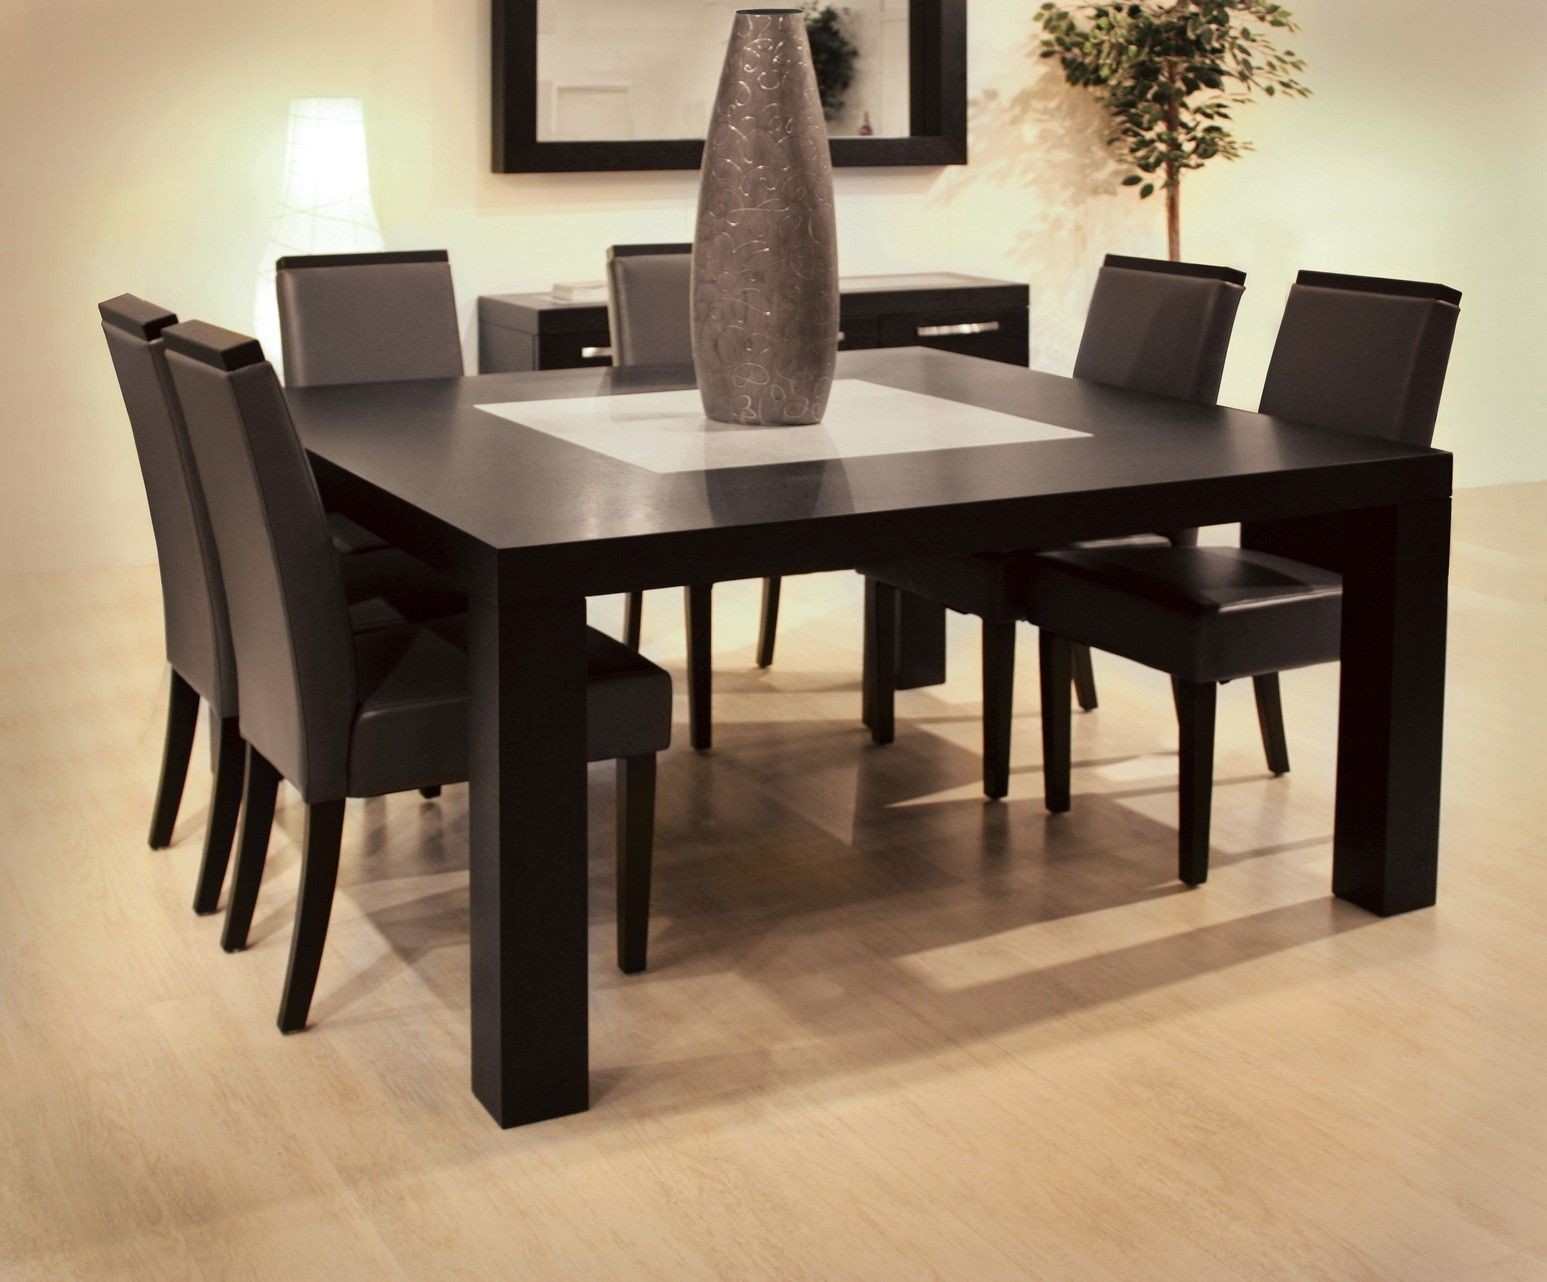 Square Dining Table Google Search Square Dining Tables Granite Dining Table Glamourous Dining Room